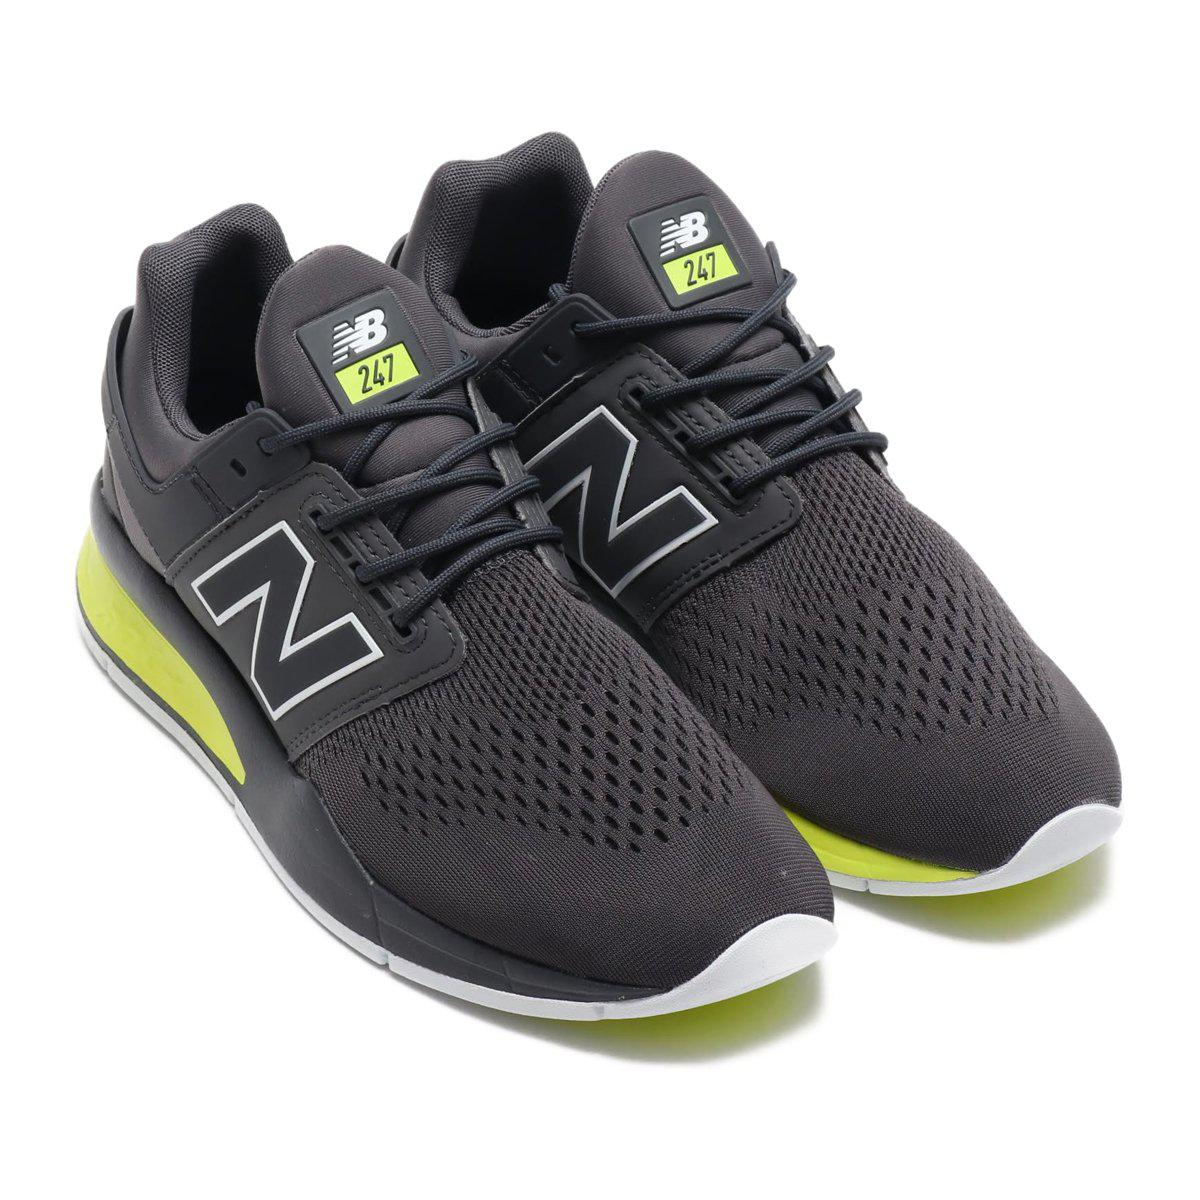 Ms247v2 (magnet/solar Yellow) Shoes